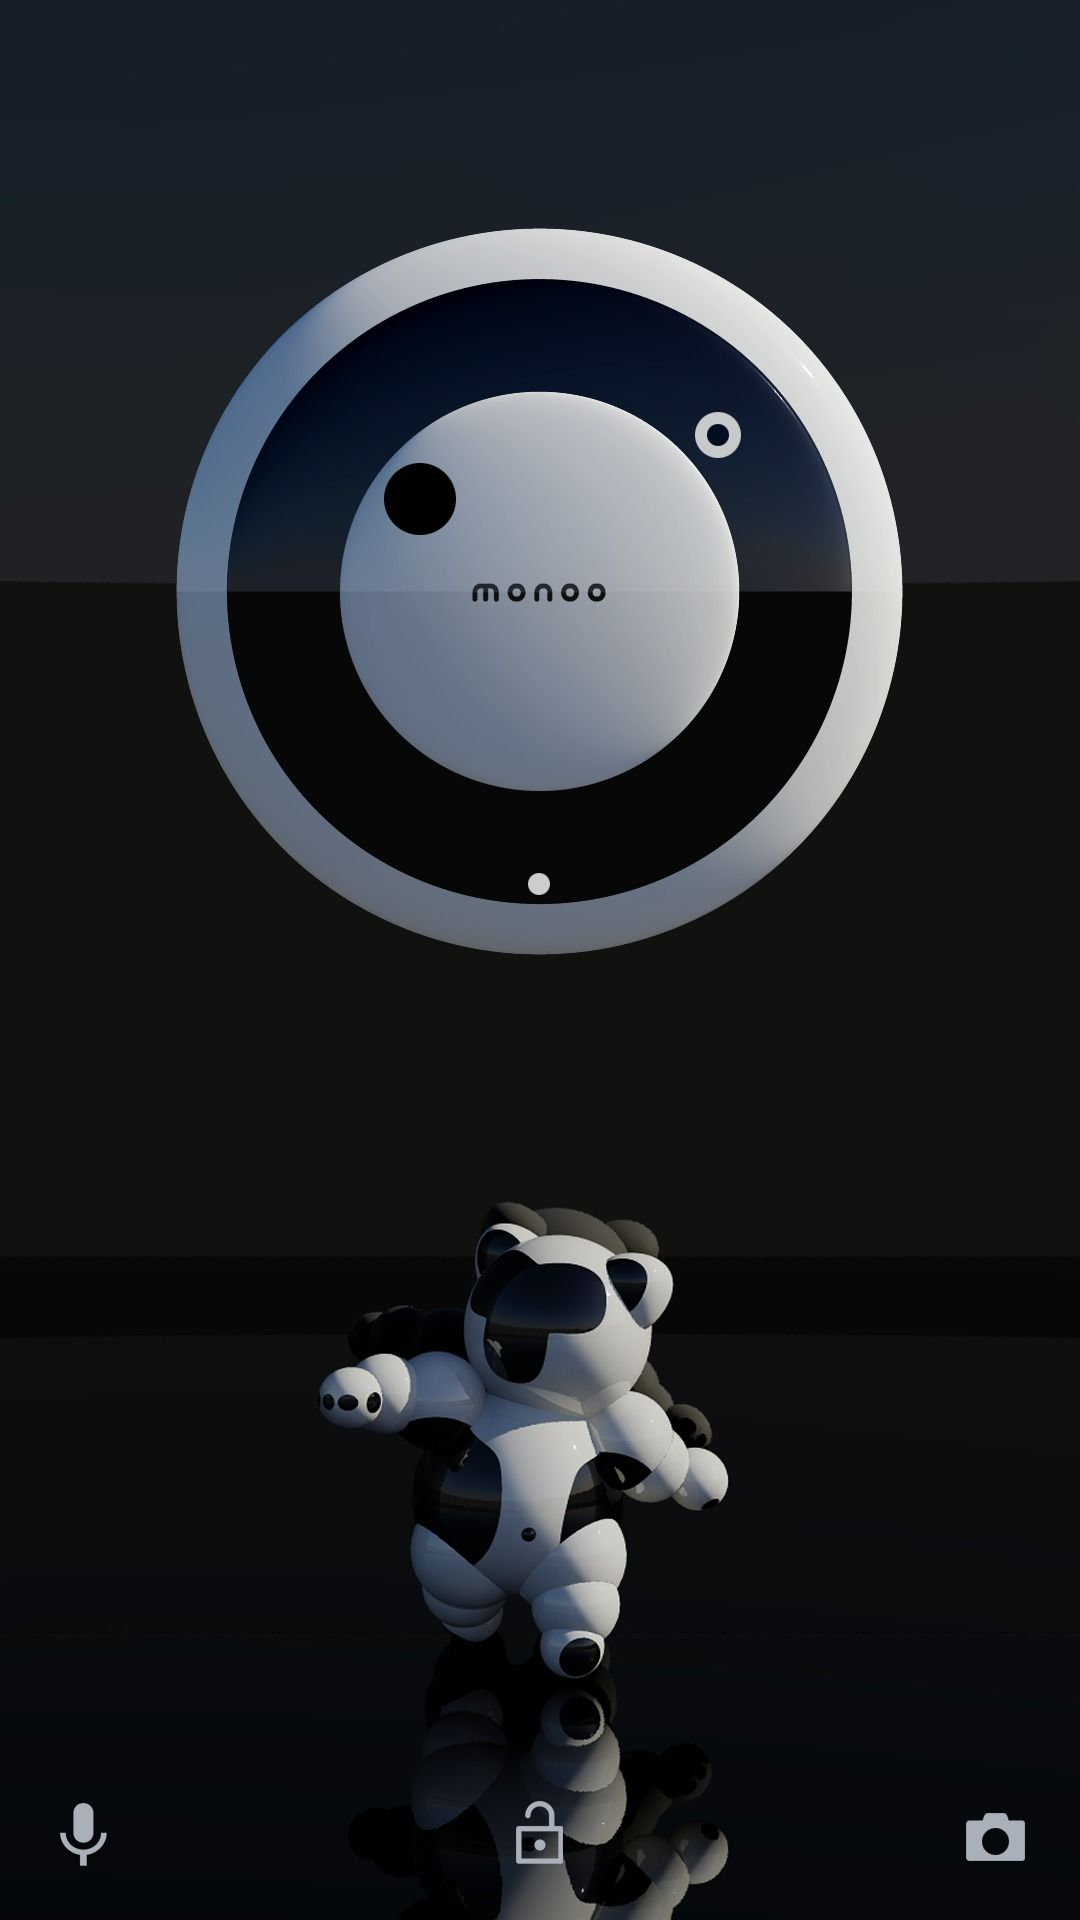 With The Monoo Xperia Theme You Can Completely Personalize Your